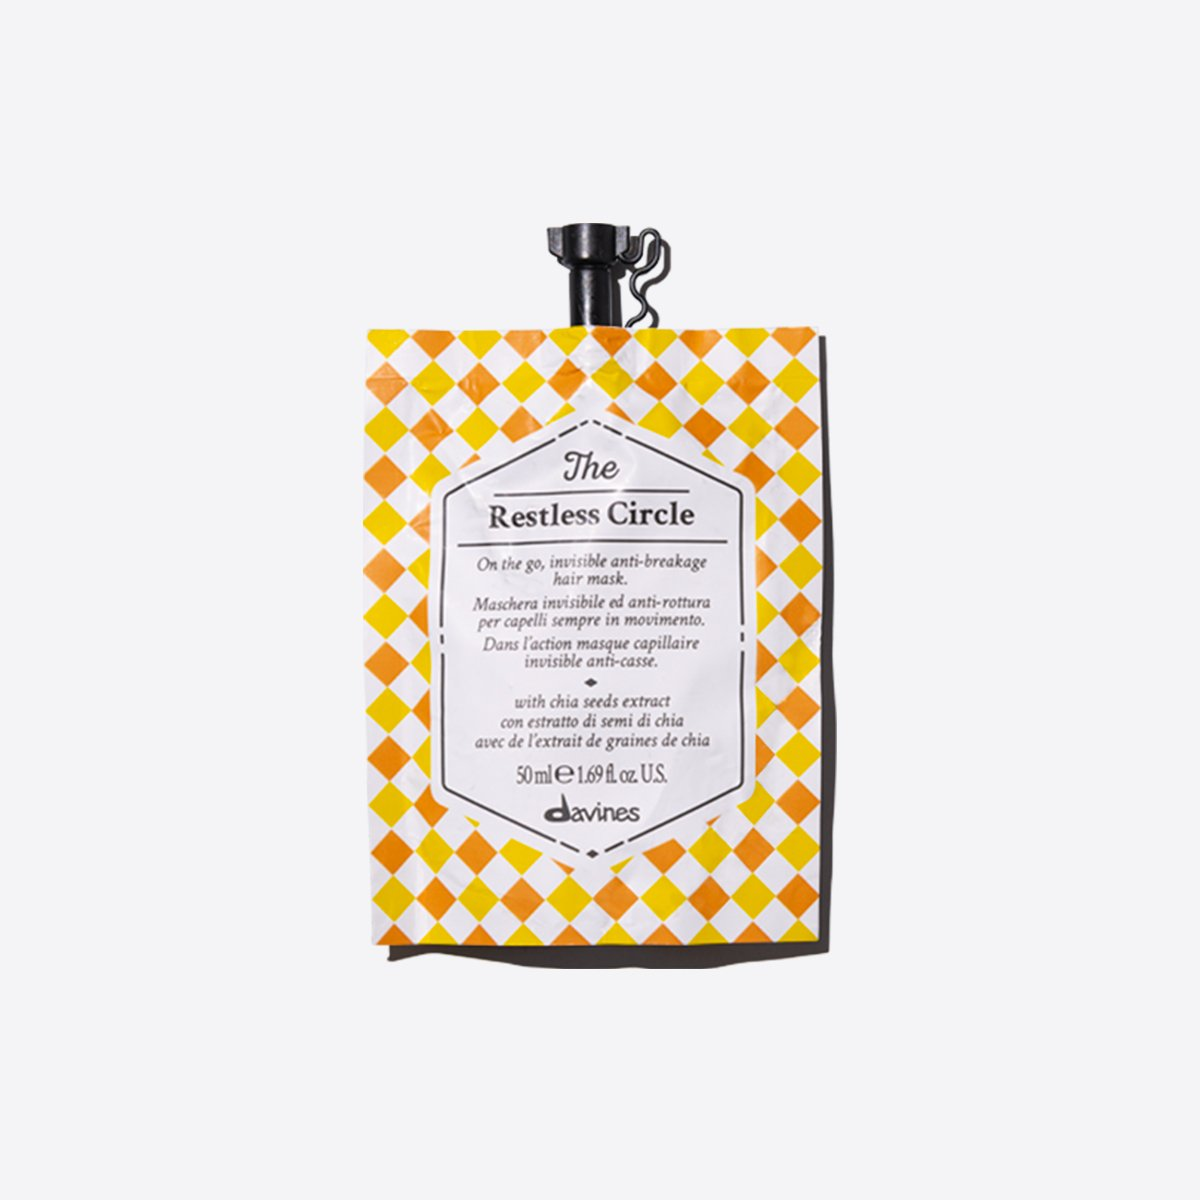 The Restless Circle by Davines